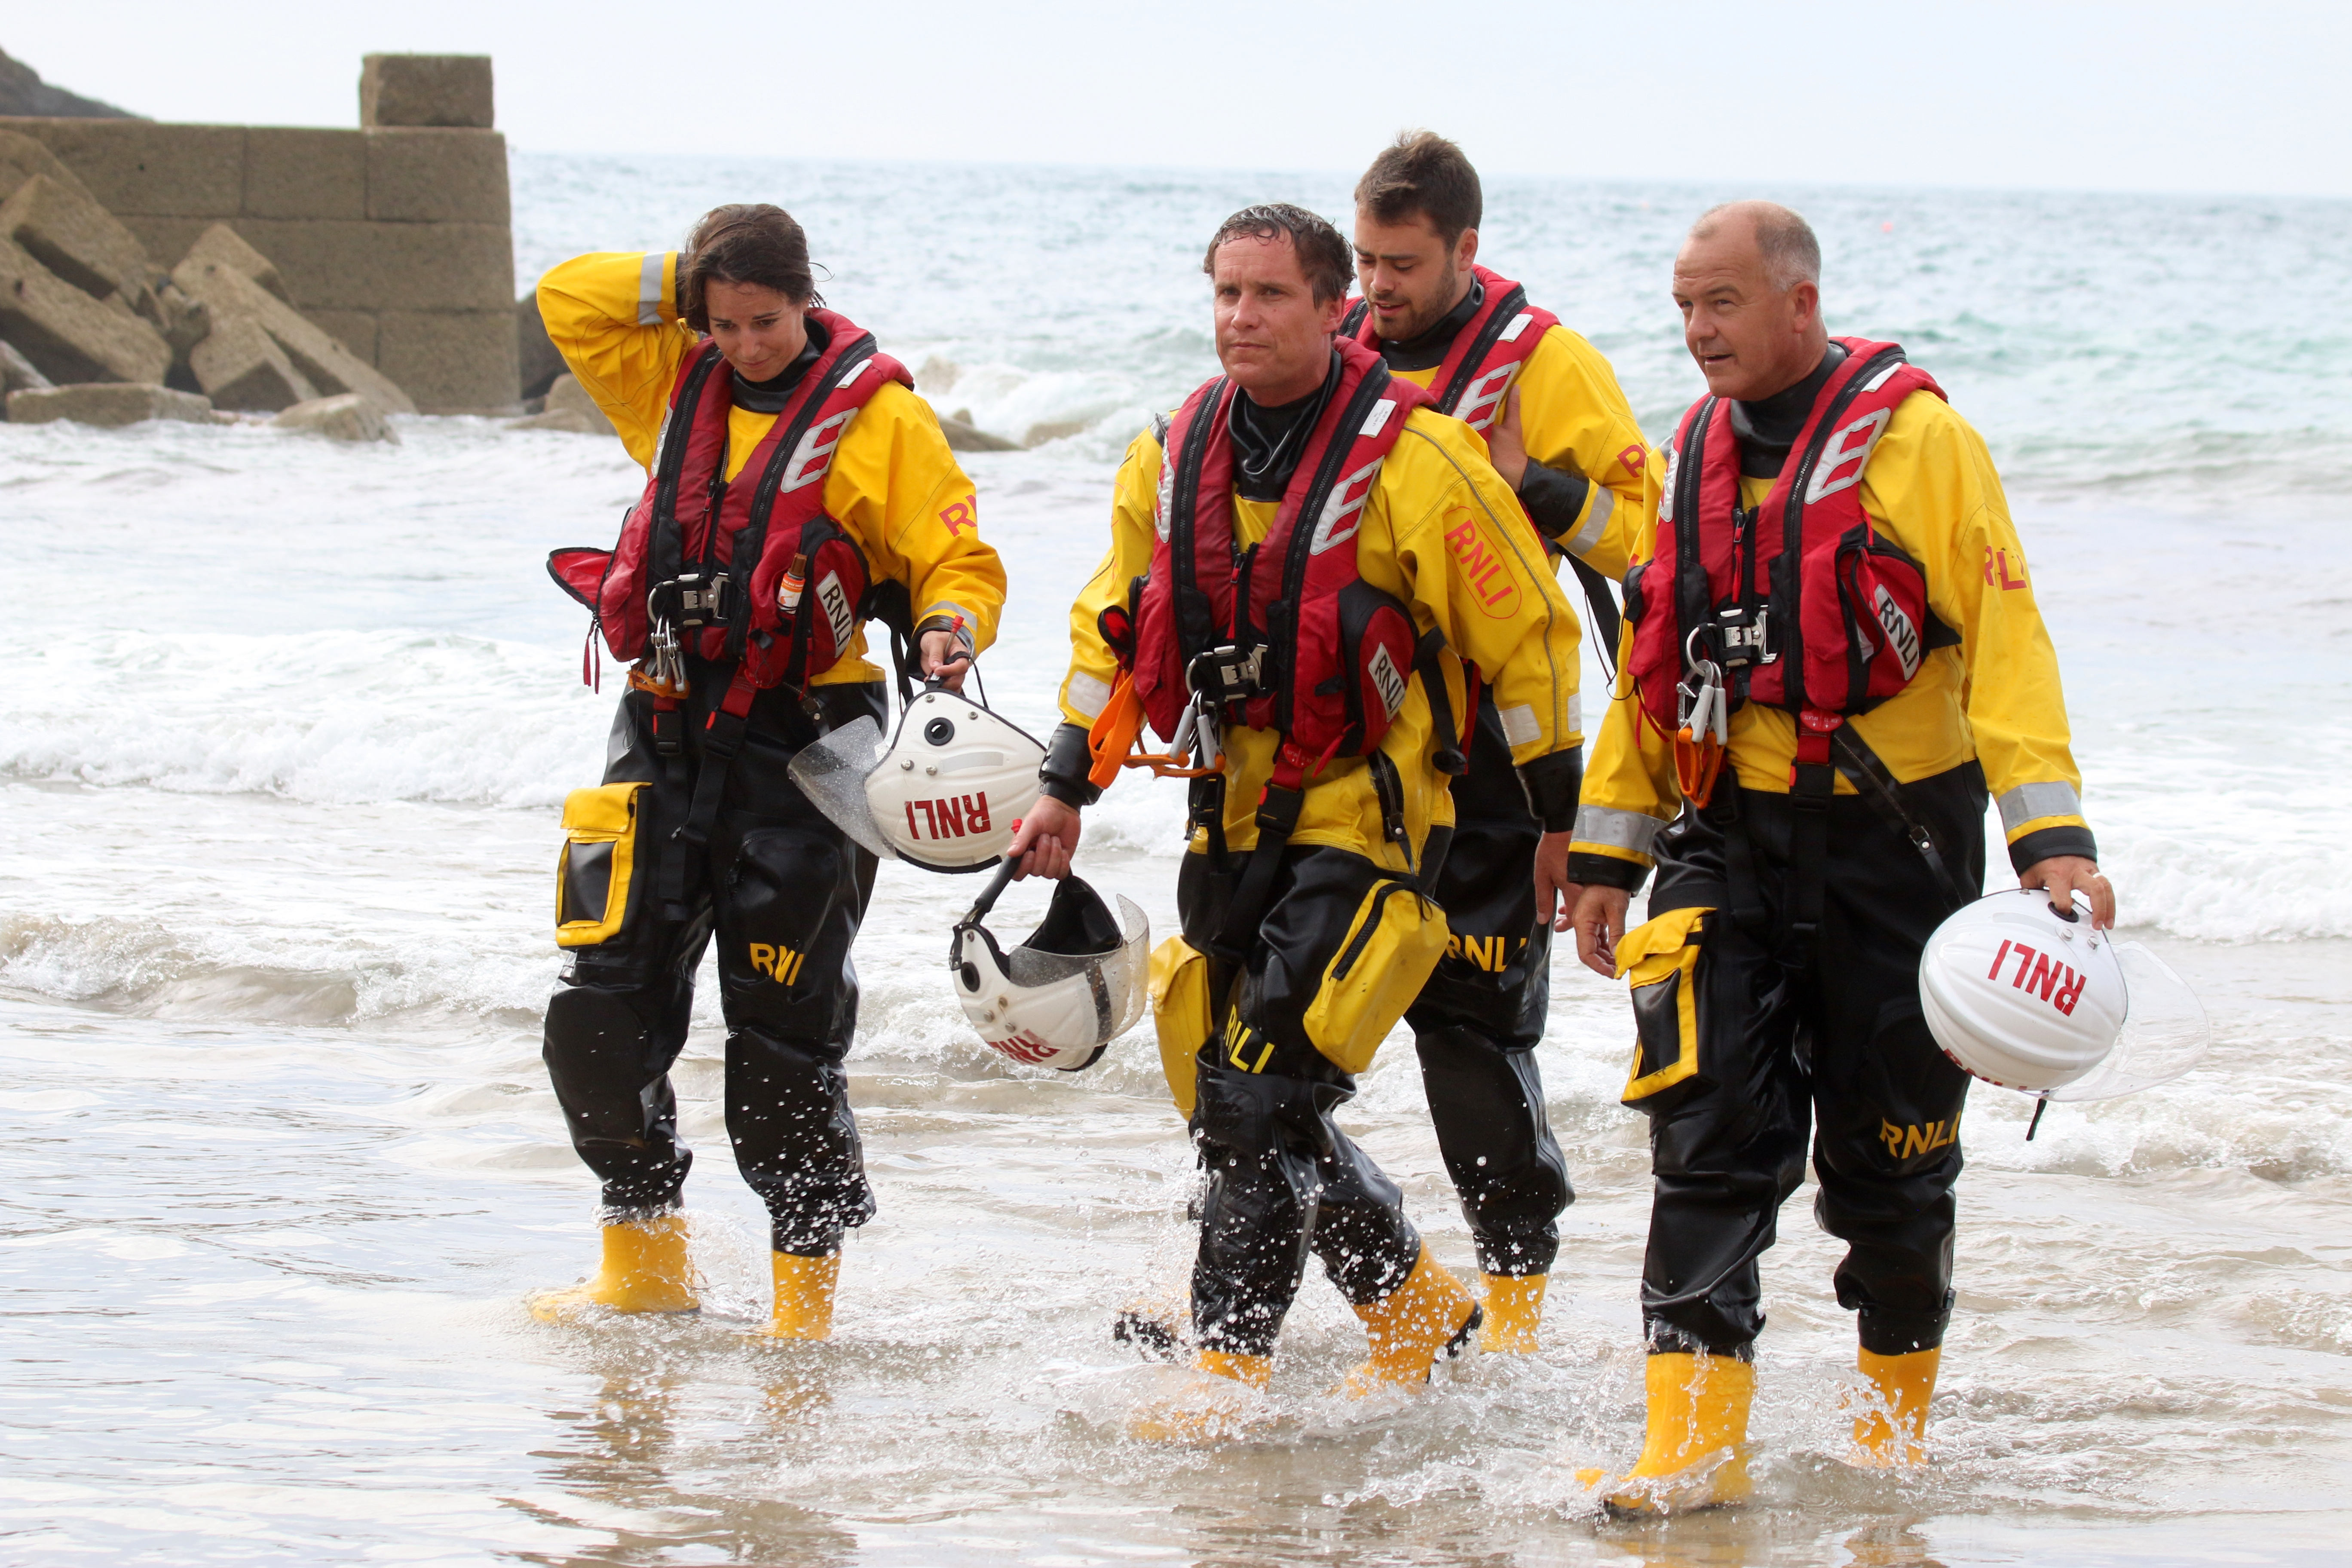 St Agnes lifeboat crew